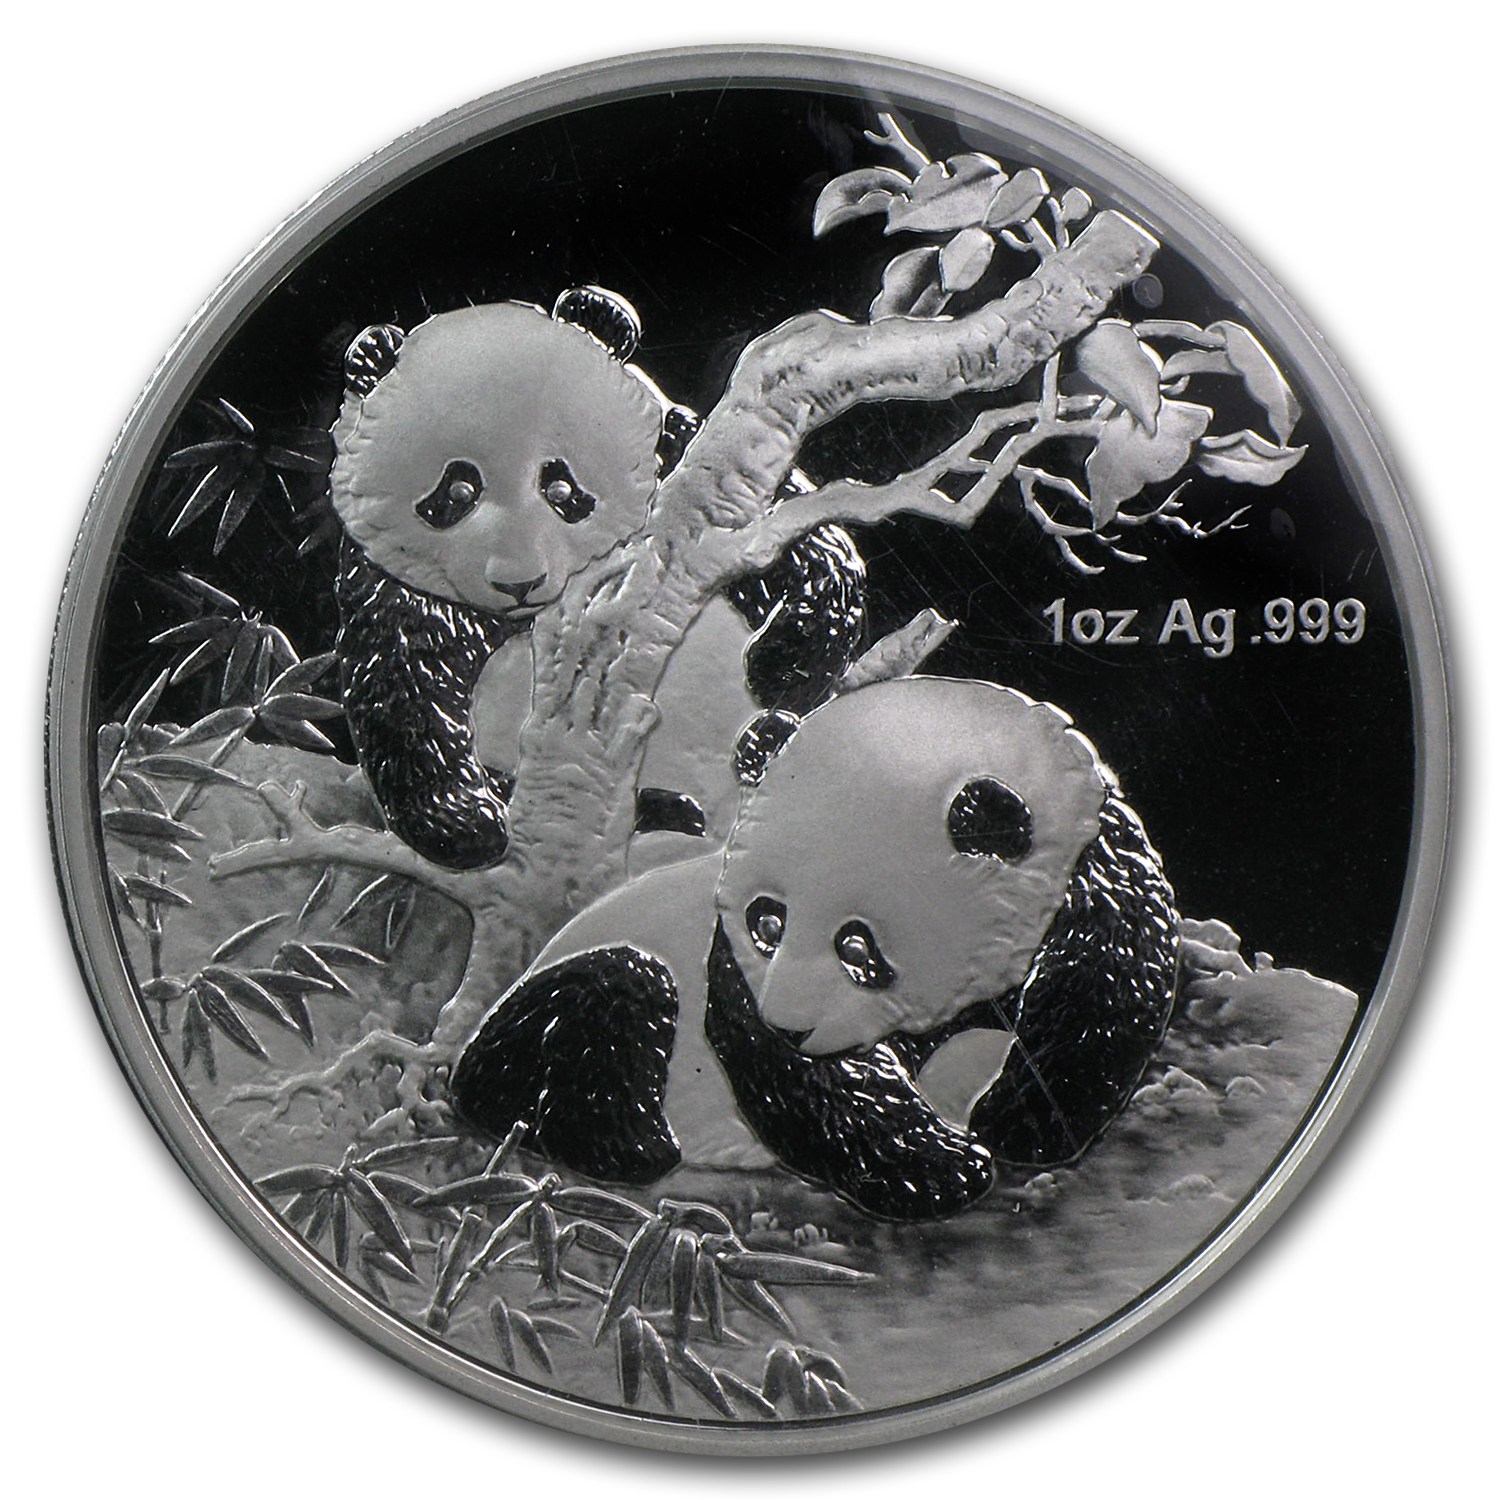 2013 China 1 oz Silver Panda Proof (Berlin World Money Fair)